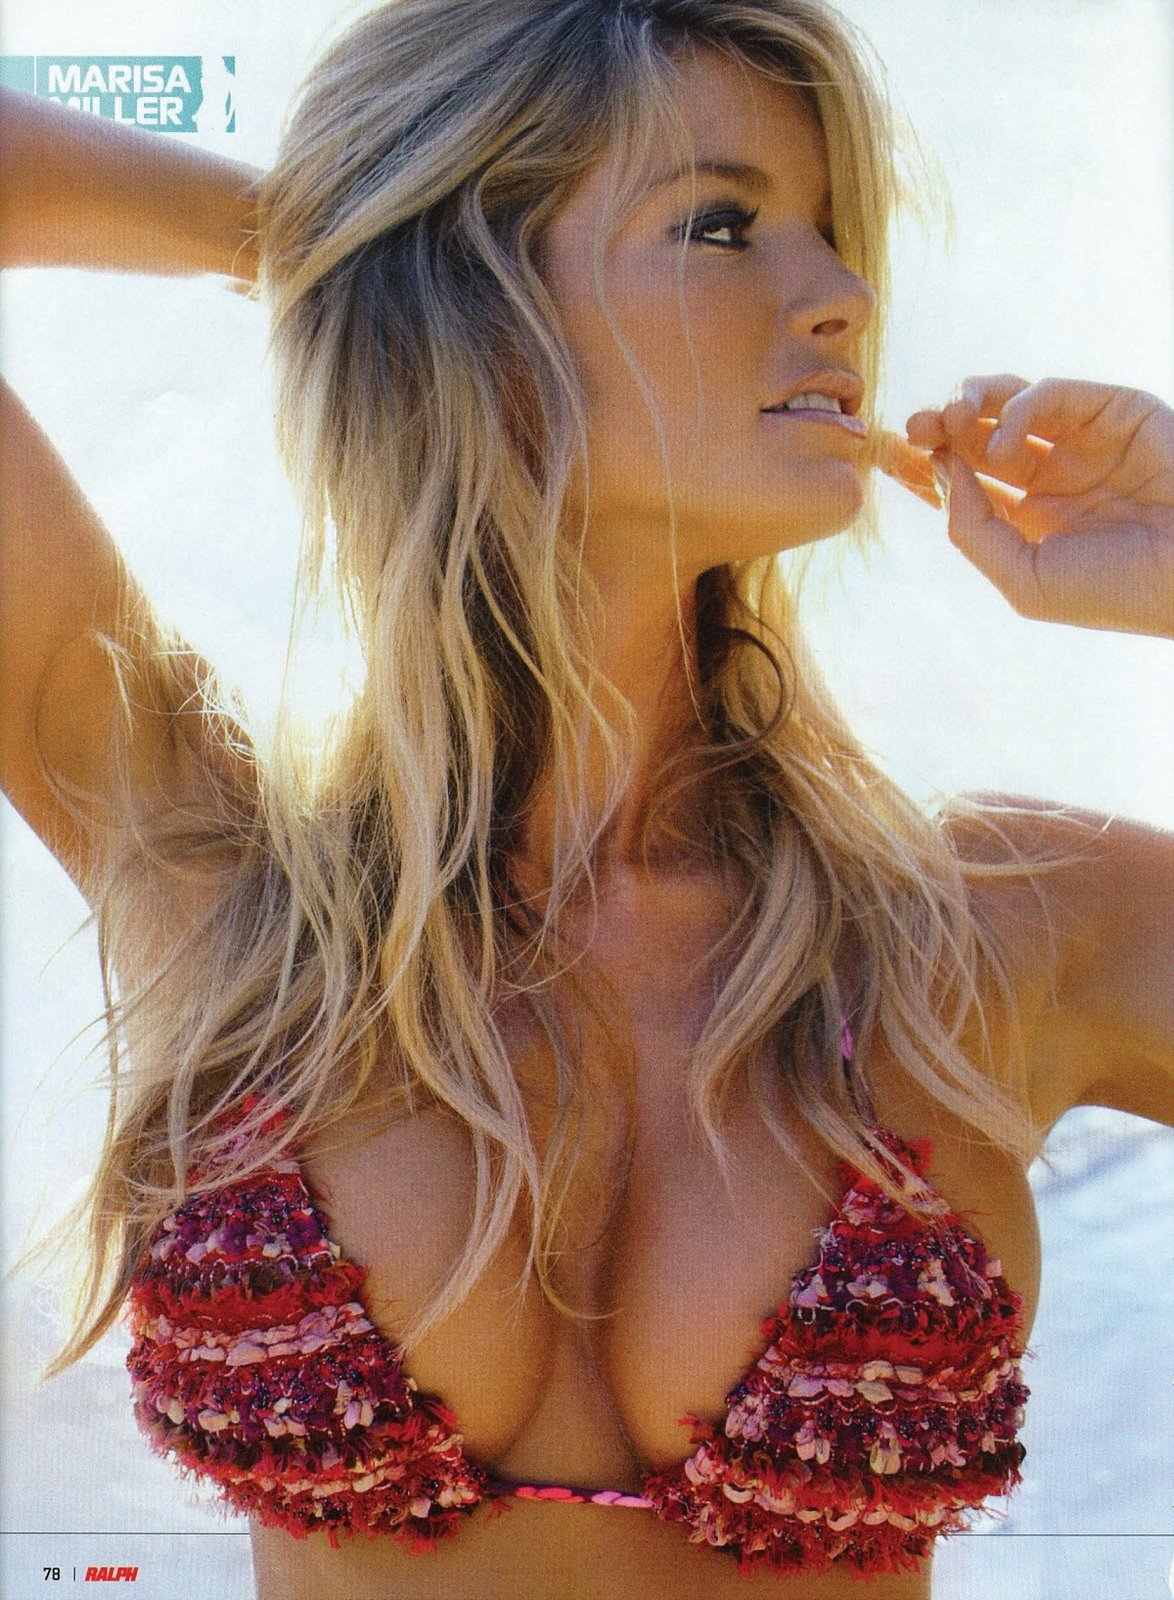 Marisa Miller hot picture